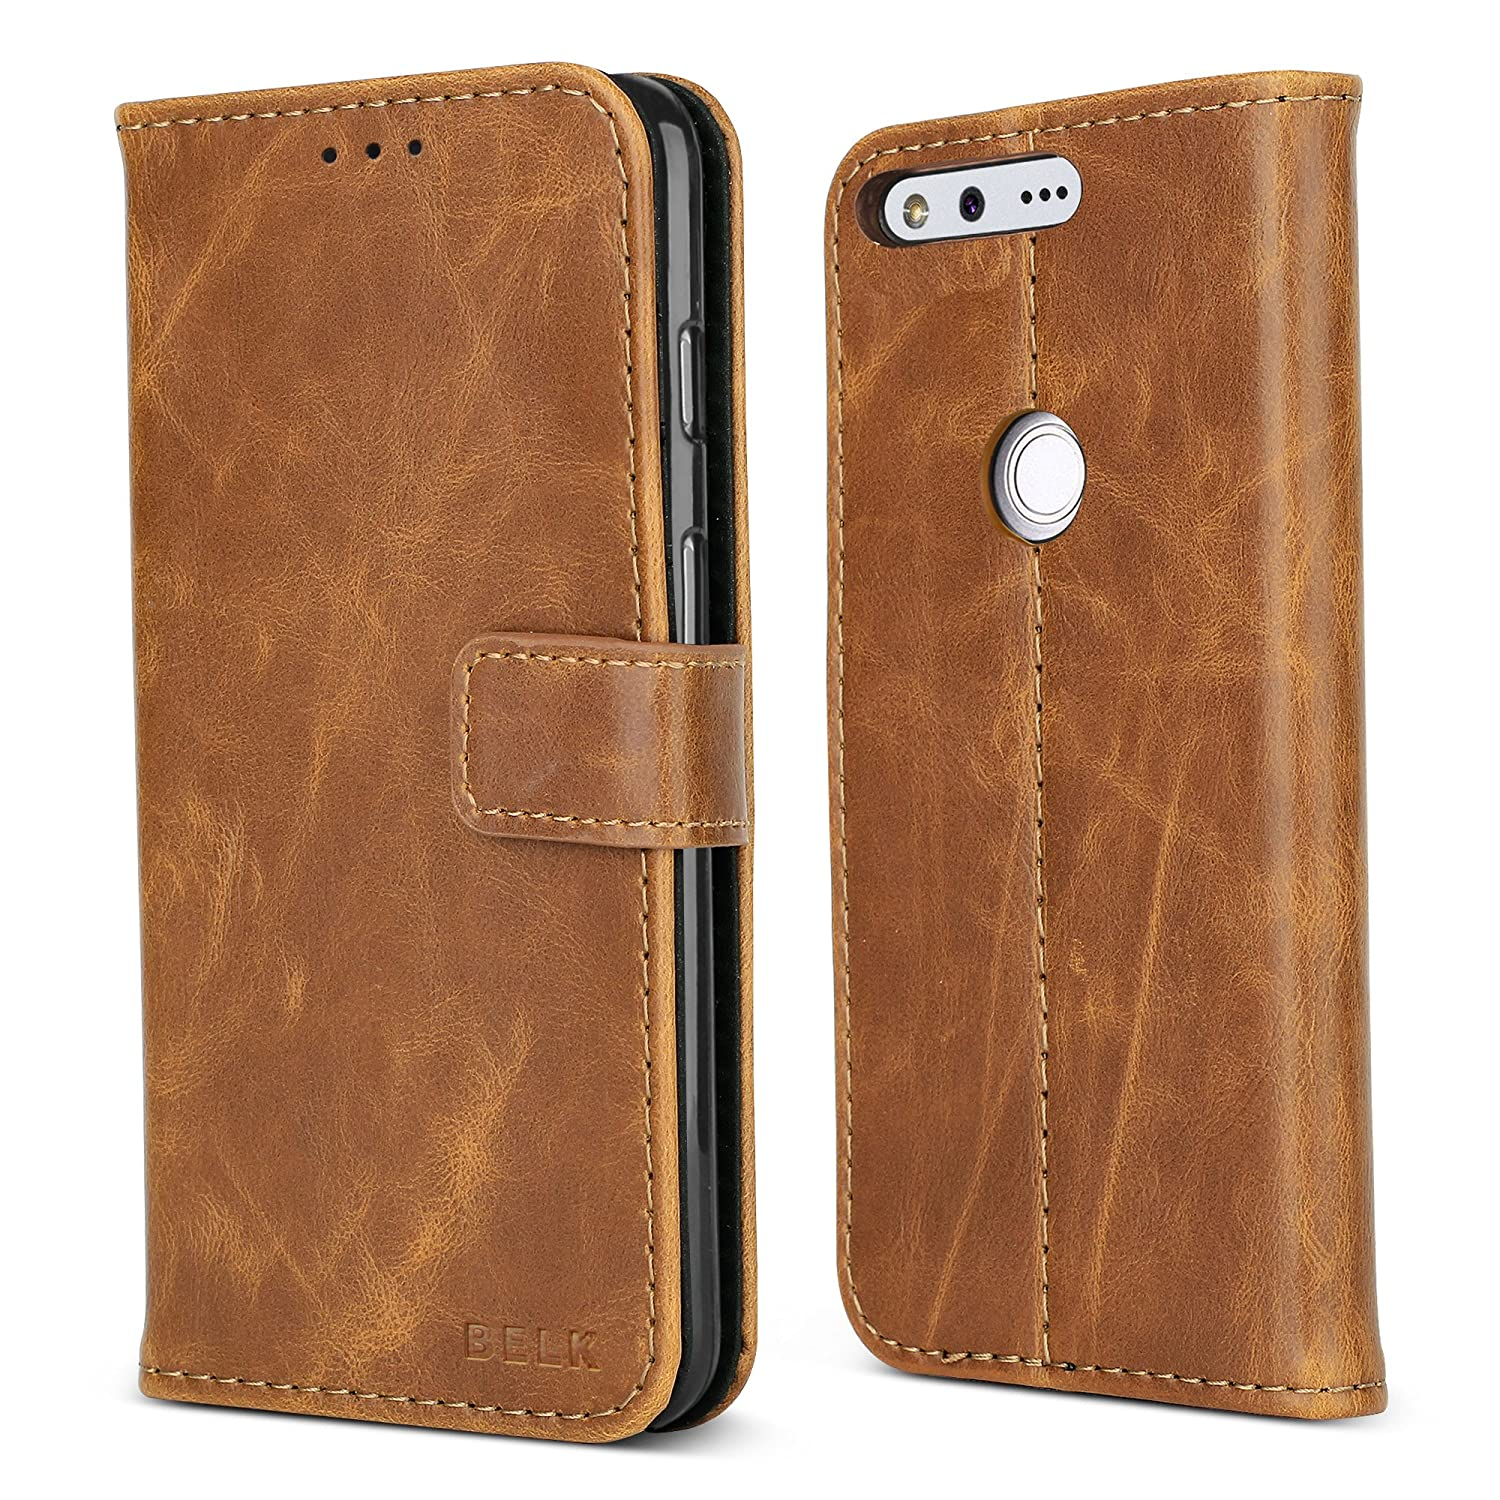 huge discount d2285 dadc0 Belk t-dsx-c Mobile A Purse Brown Mobile Phone Case